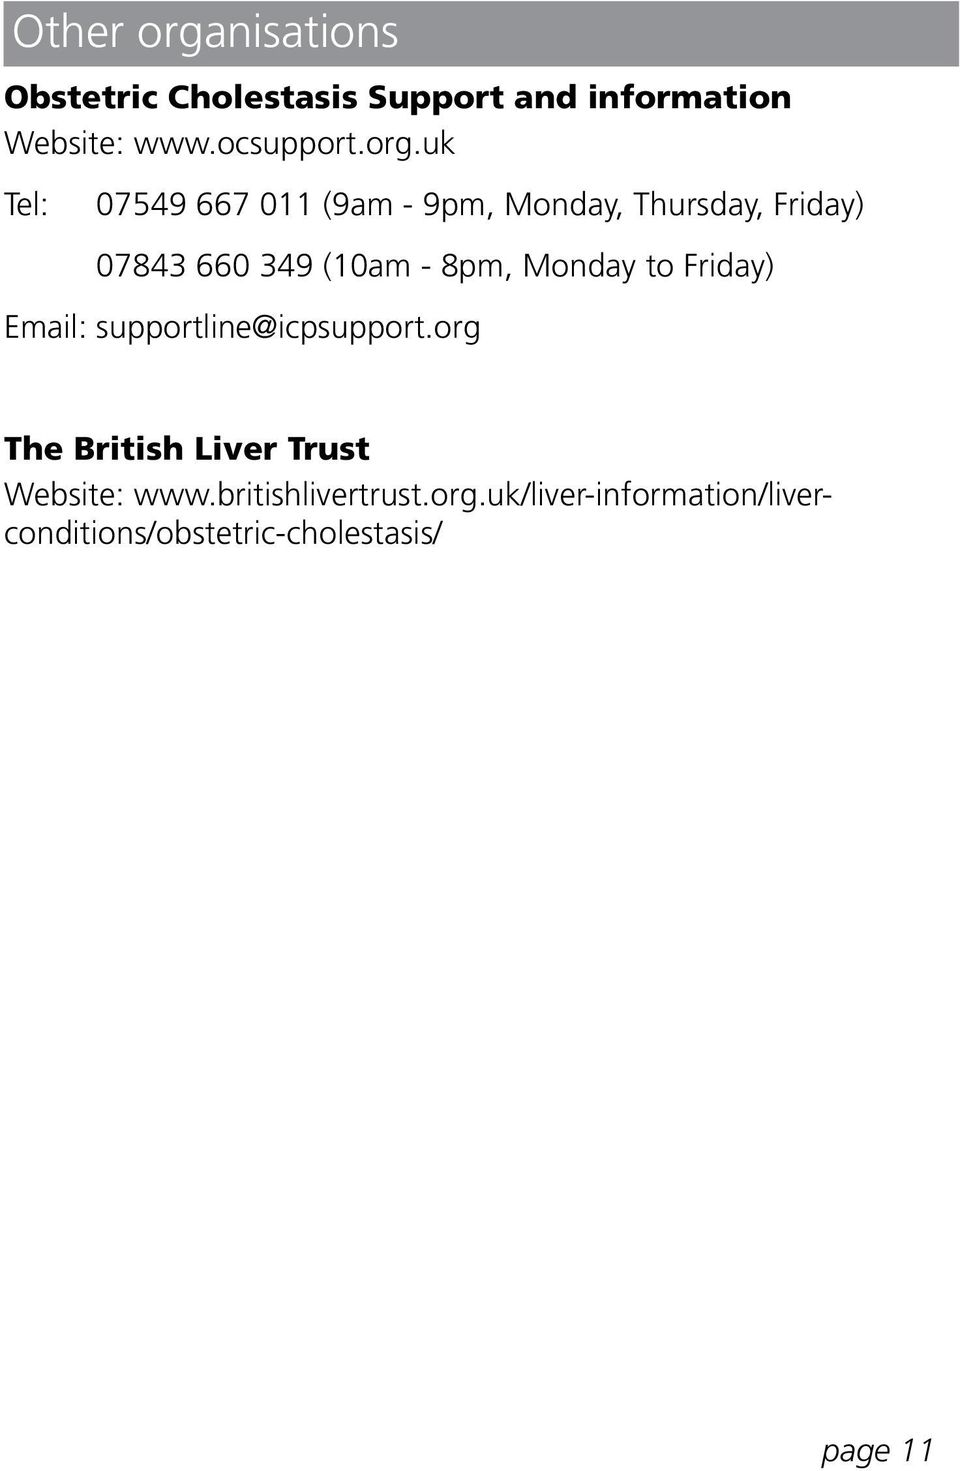 8pm, Monday to Friday) Email: supportline@icpsupport.